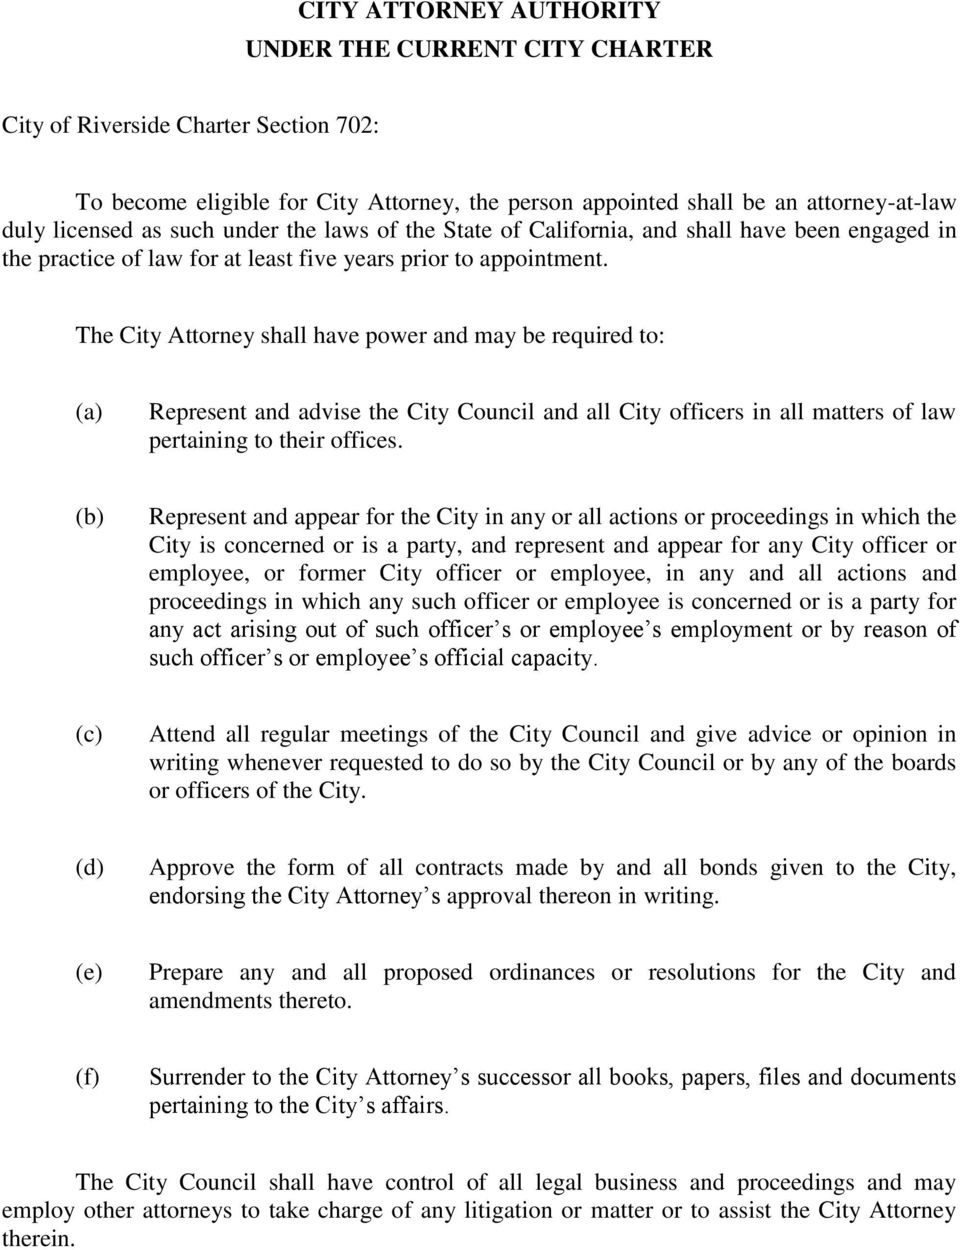 The City Attorney shall have power and may be required to: (a) Represent and advise the City Council and all City officers in all matters of law pertaining to their offices.